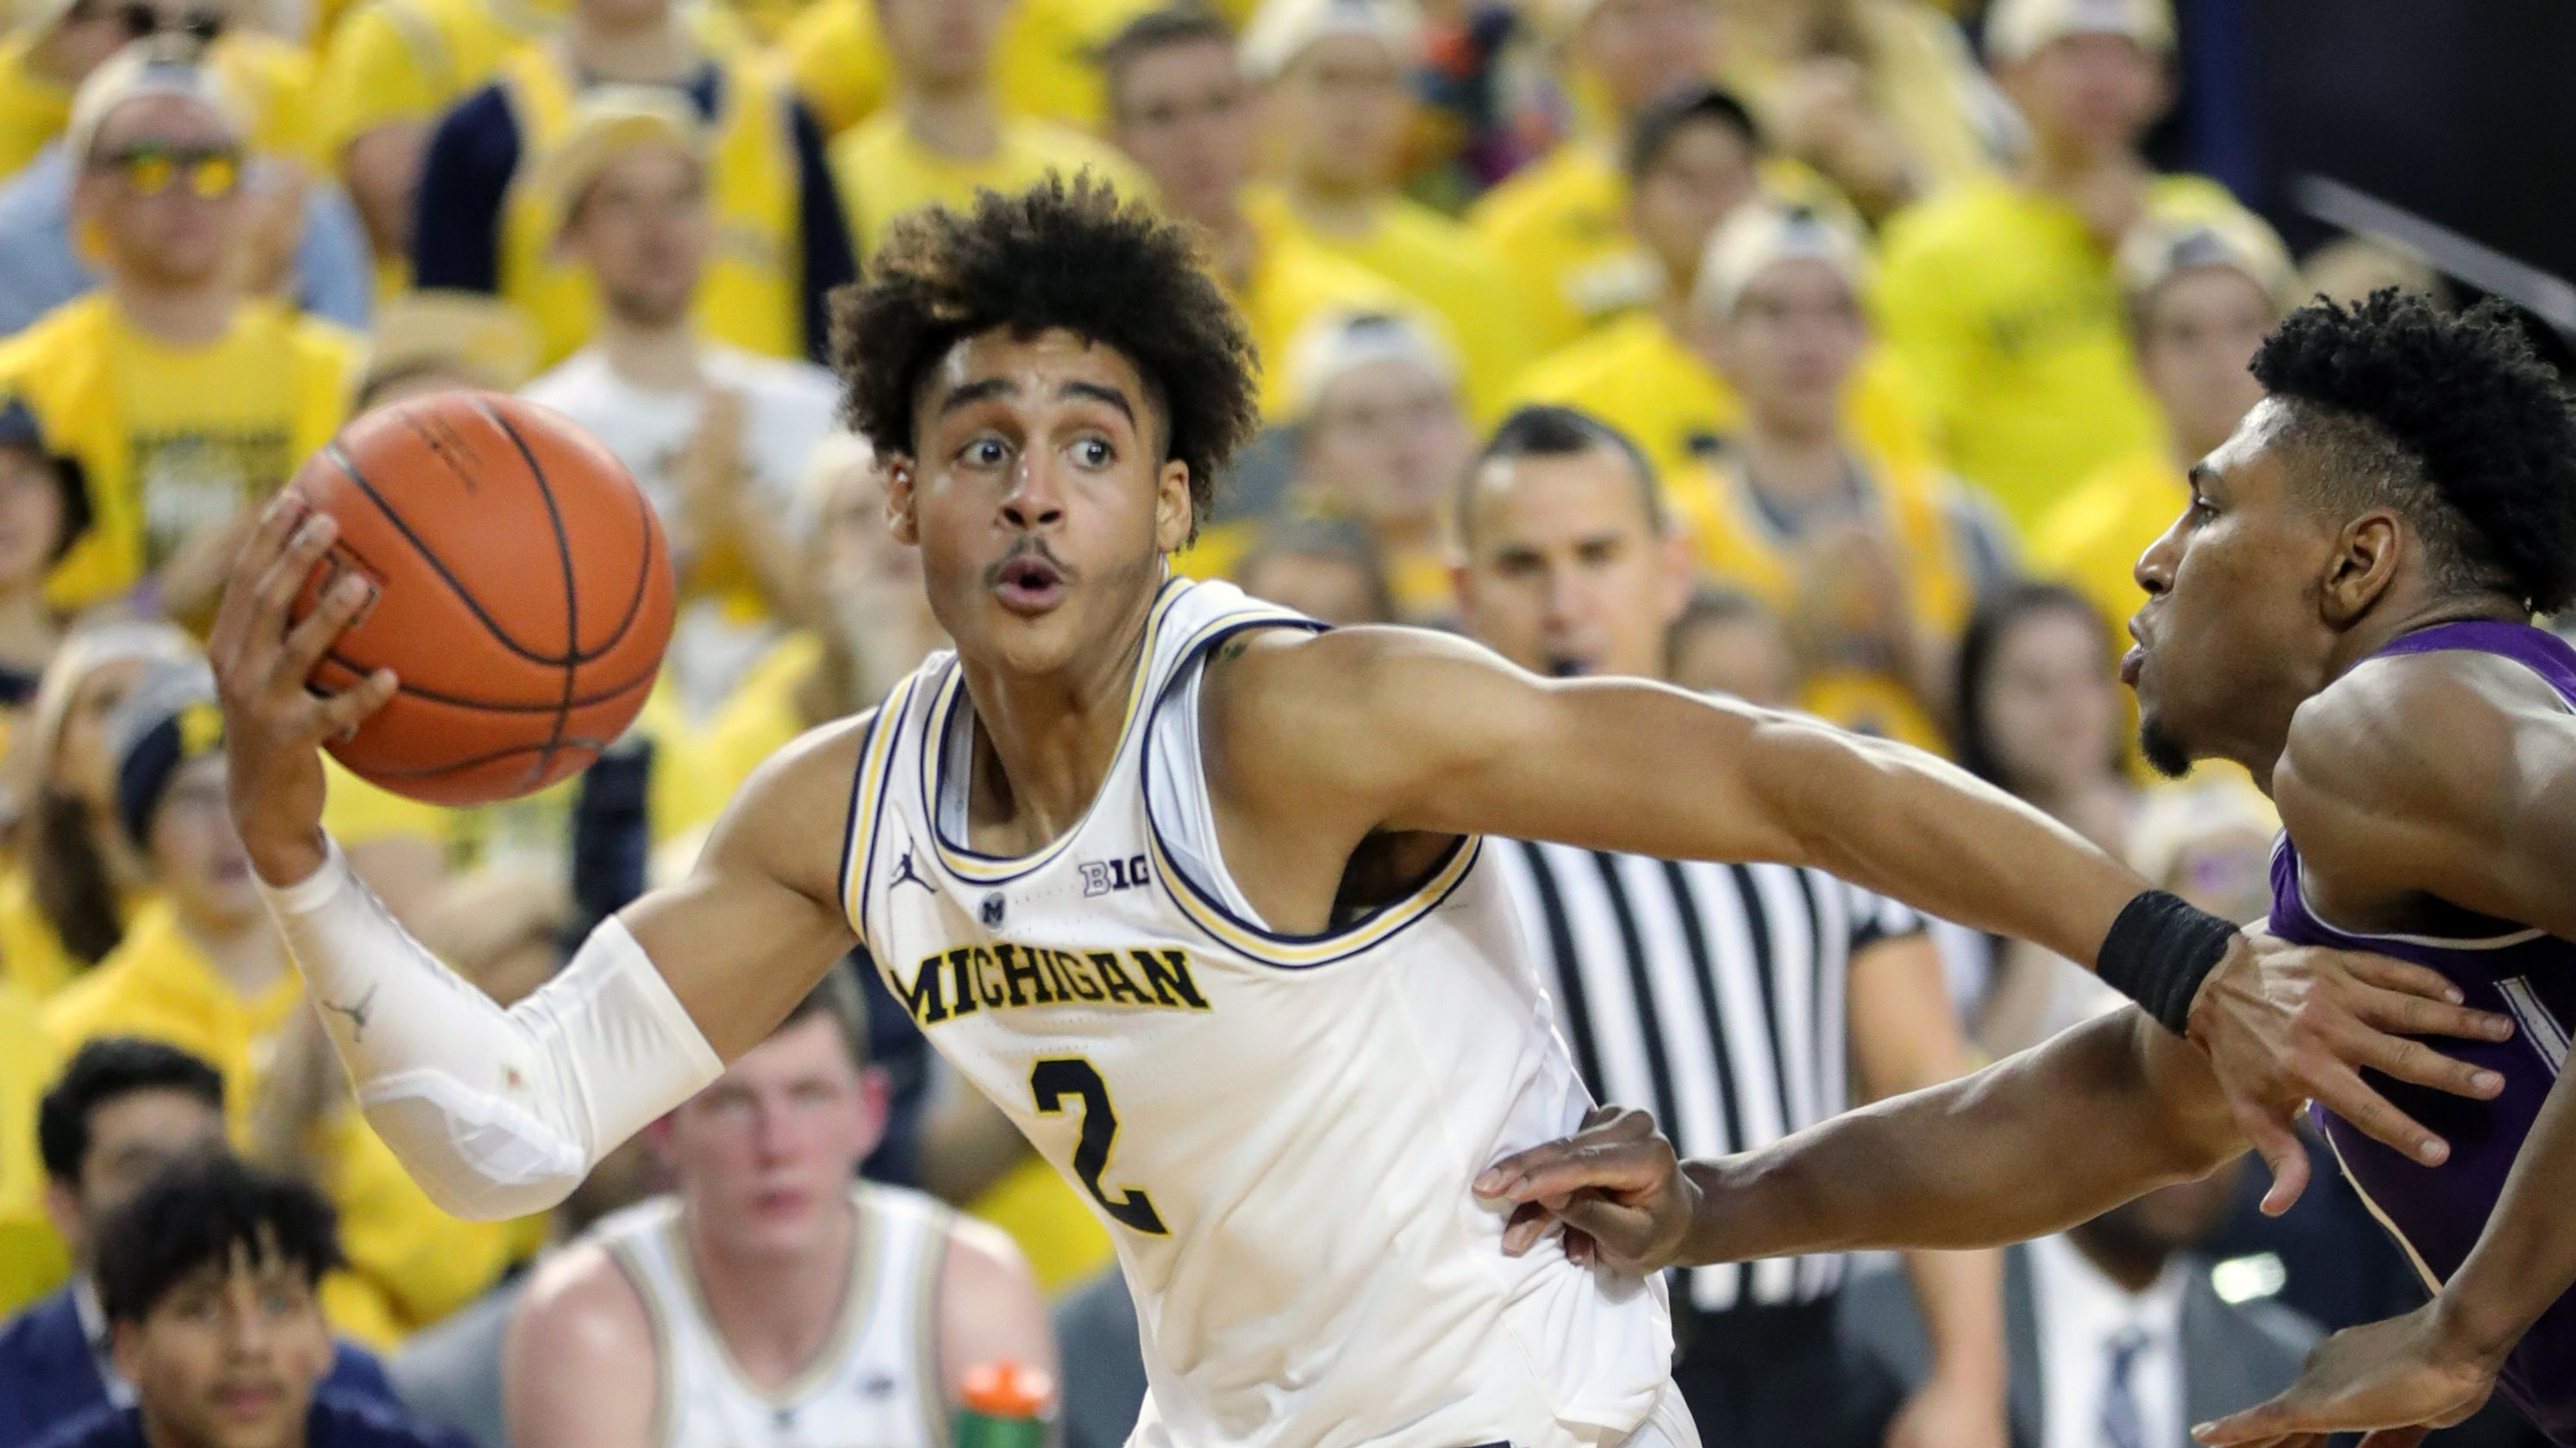 Michigan Wolverines record start